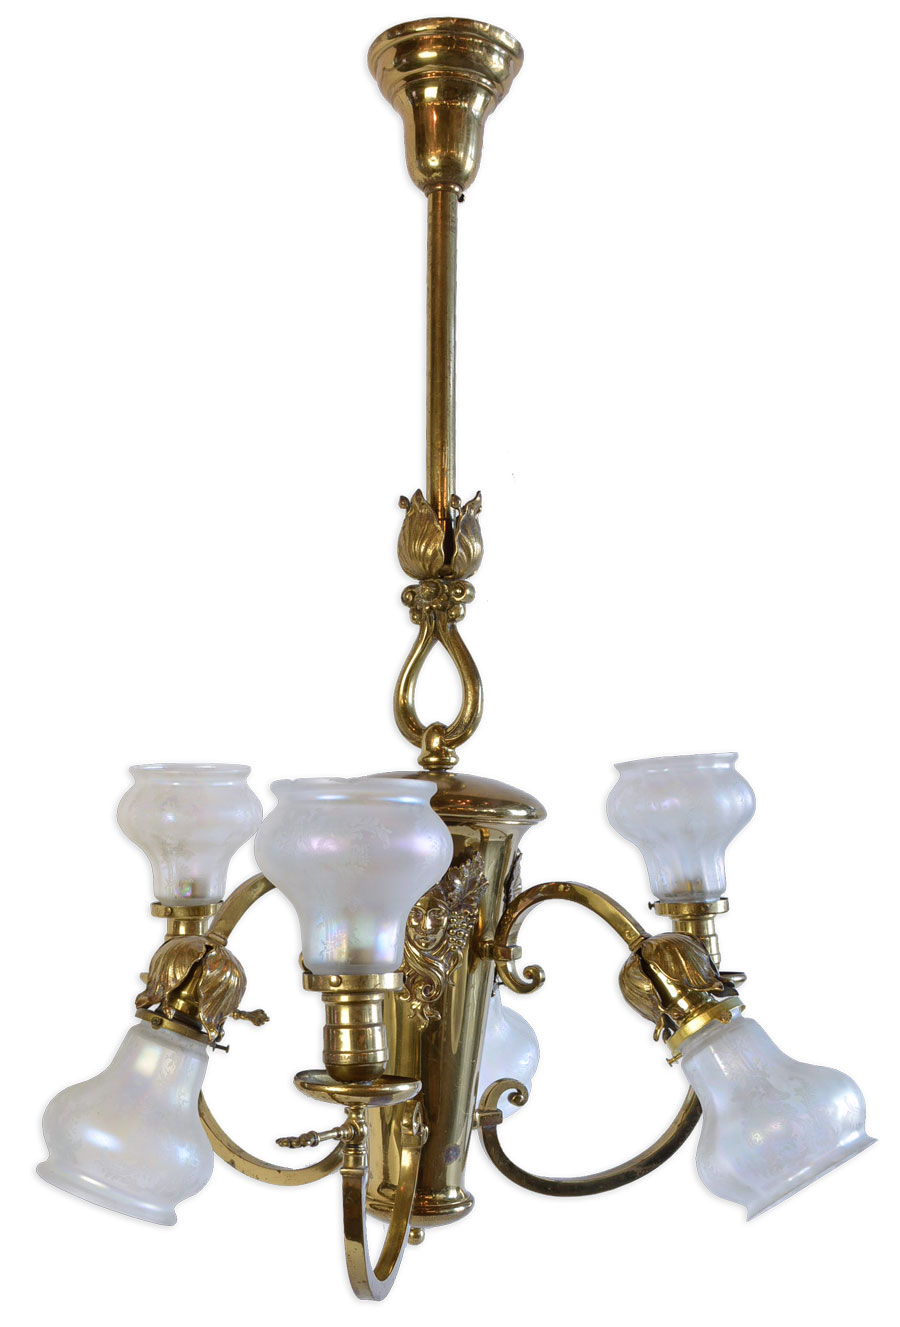 6 LIGHT POLISHED BRASS CHANDELIER WITH CAMEO